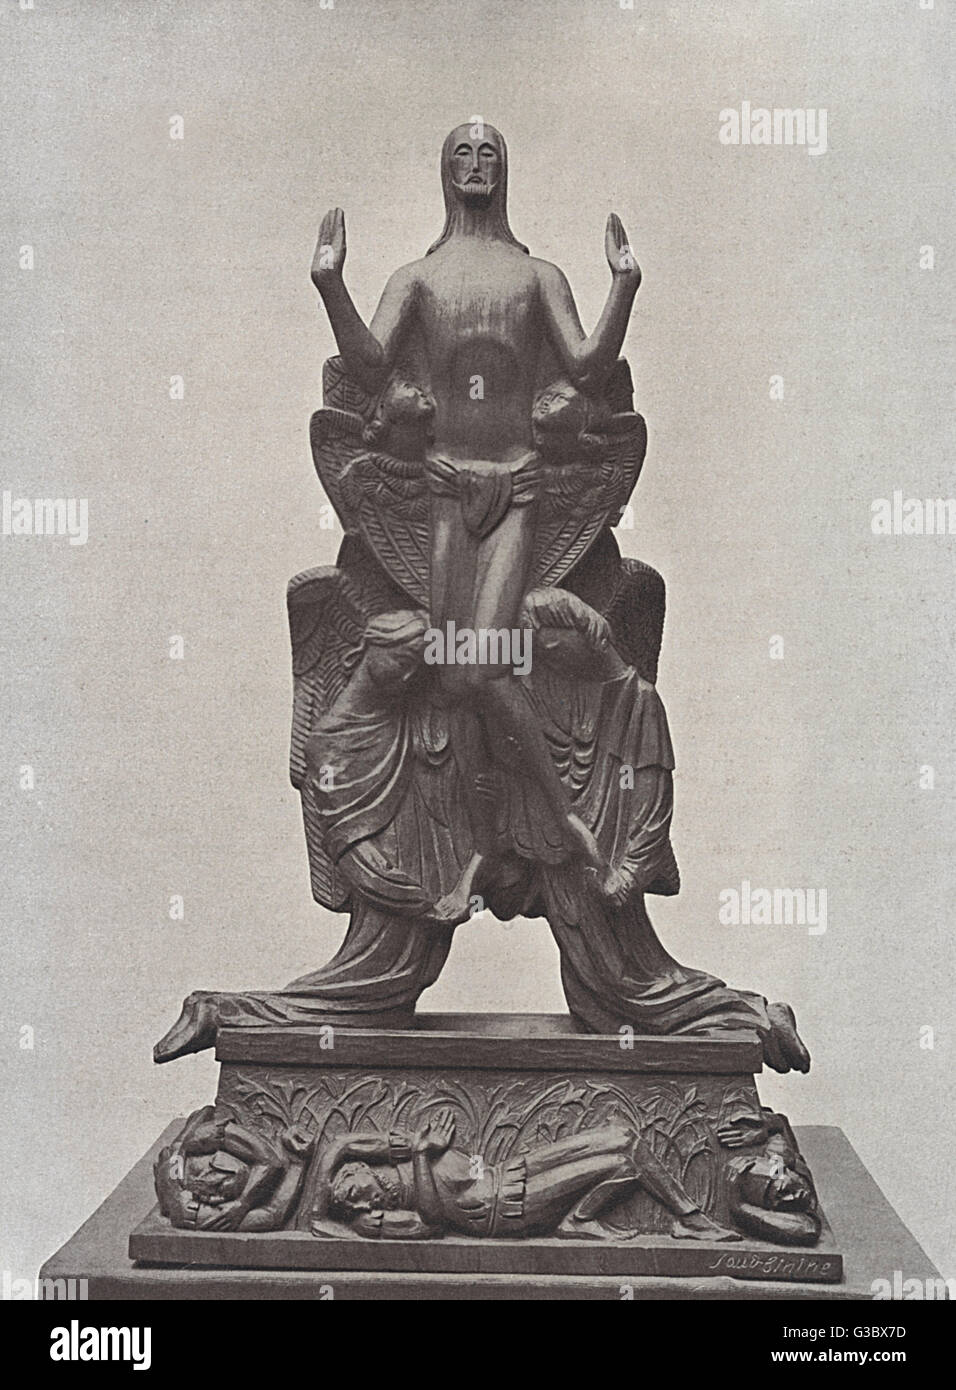 Sculpture, Resurrection, by Seraphine Soudbinine, Russian artist. Date:  early 20th century